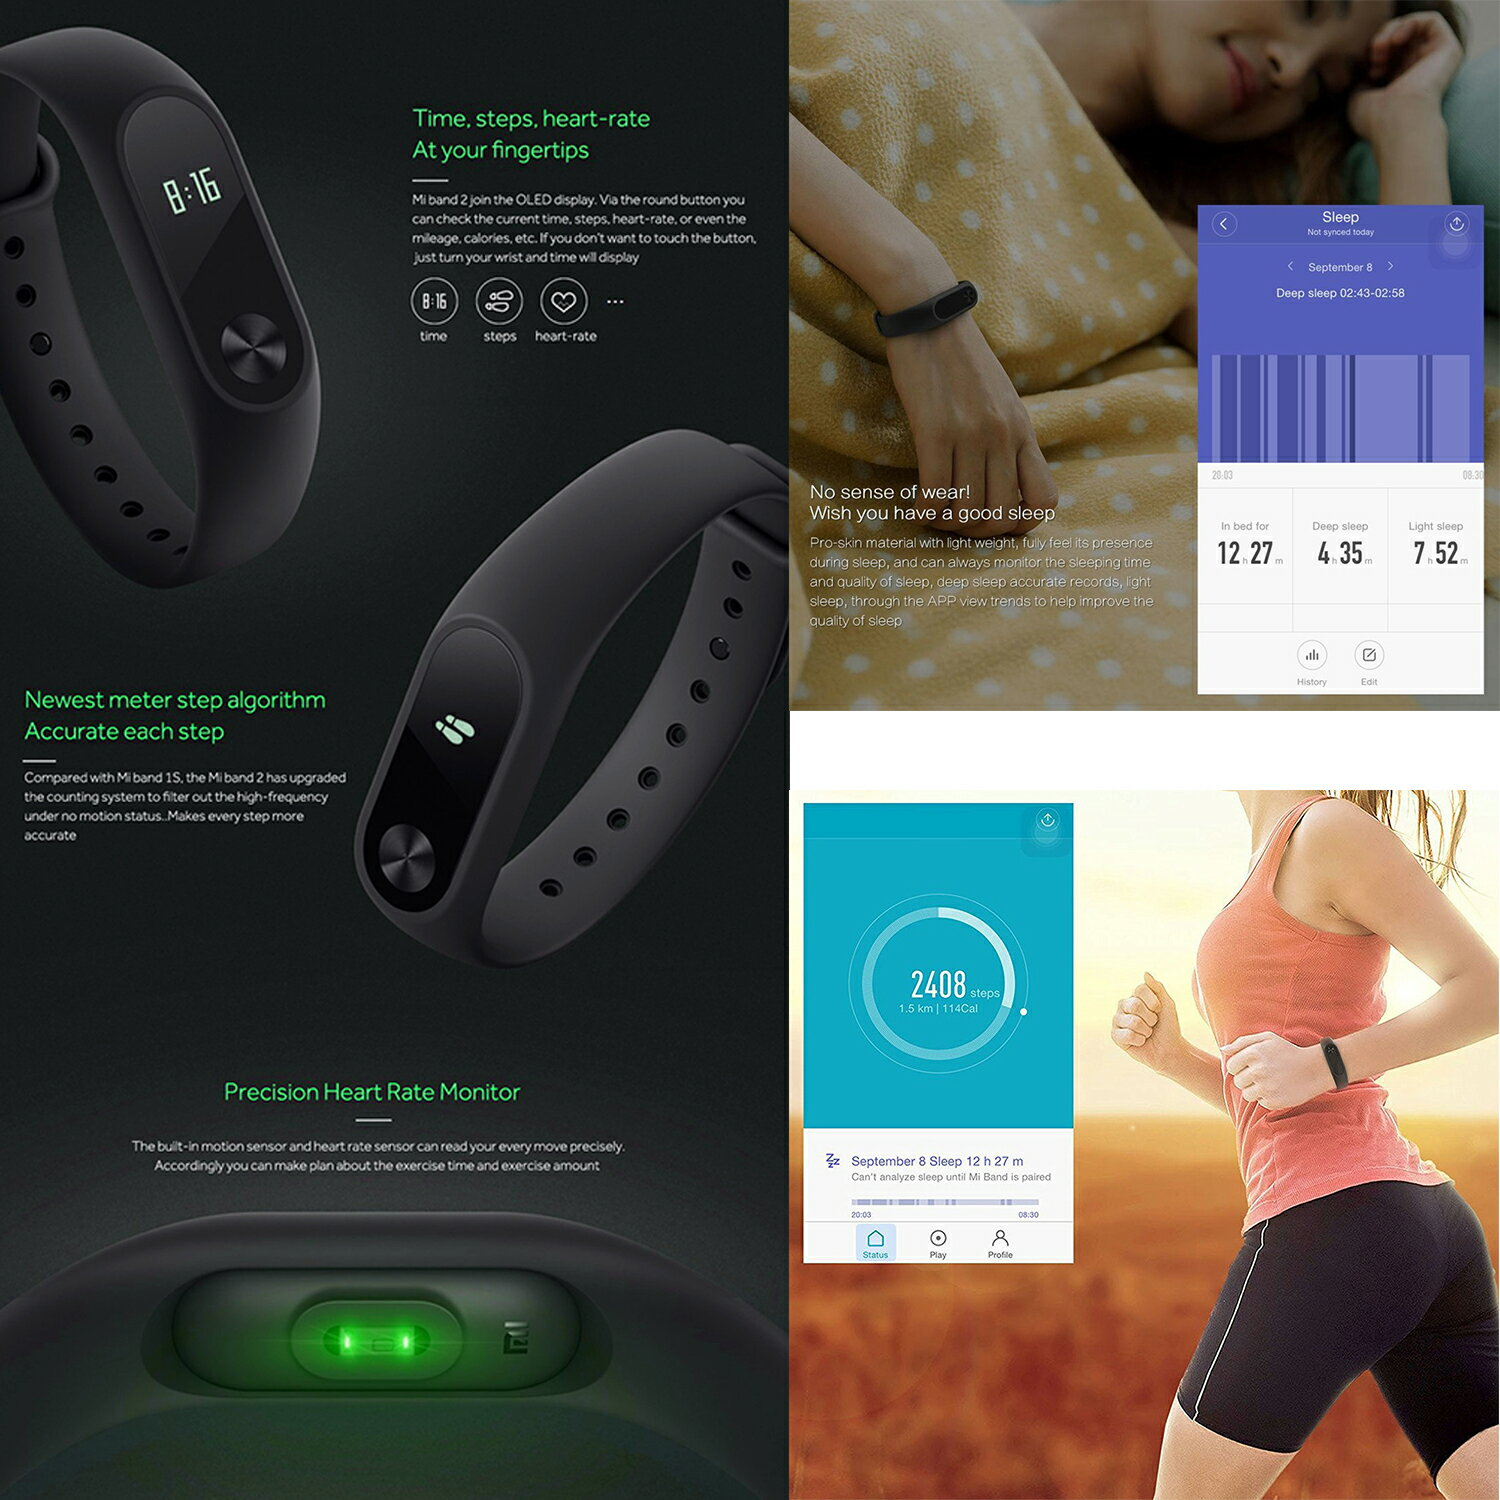 Smart Wristband Fitness Activity Tracker With OLED Display Touchpad Heart Rate Monitor Pedometer Waterproof Wireless Bluetooth 4.0 Support Android 4.4 SUMSUNG GOOGLE HTC SONY and iphone 5/6/6s/7 IOS 7.0 (Black) 9